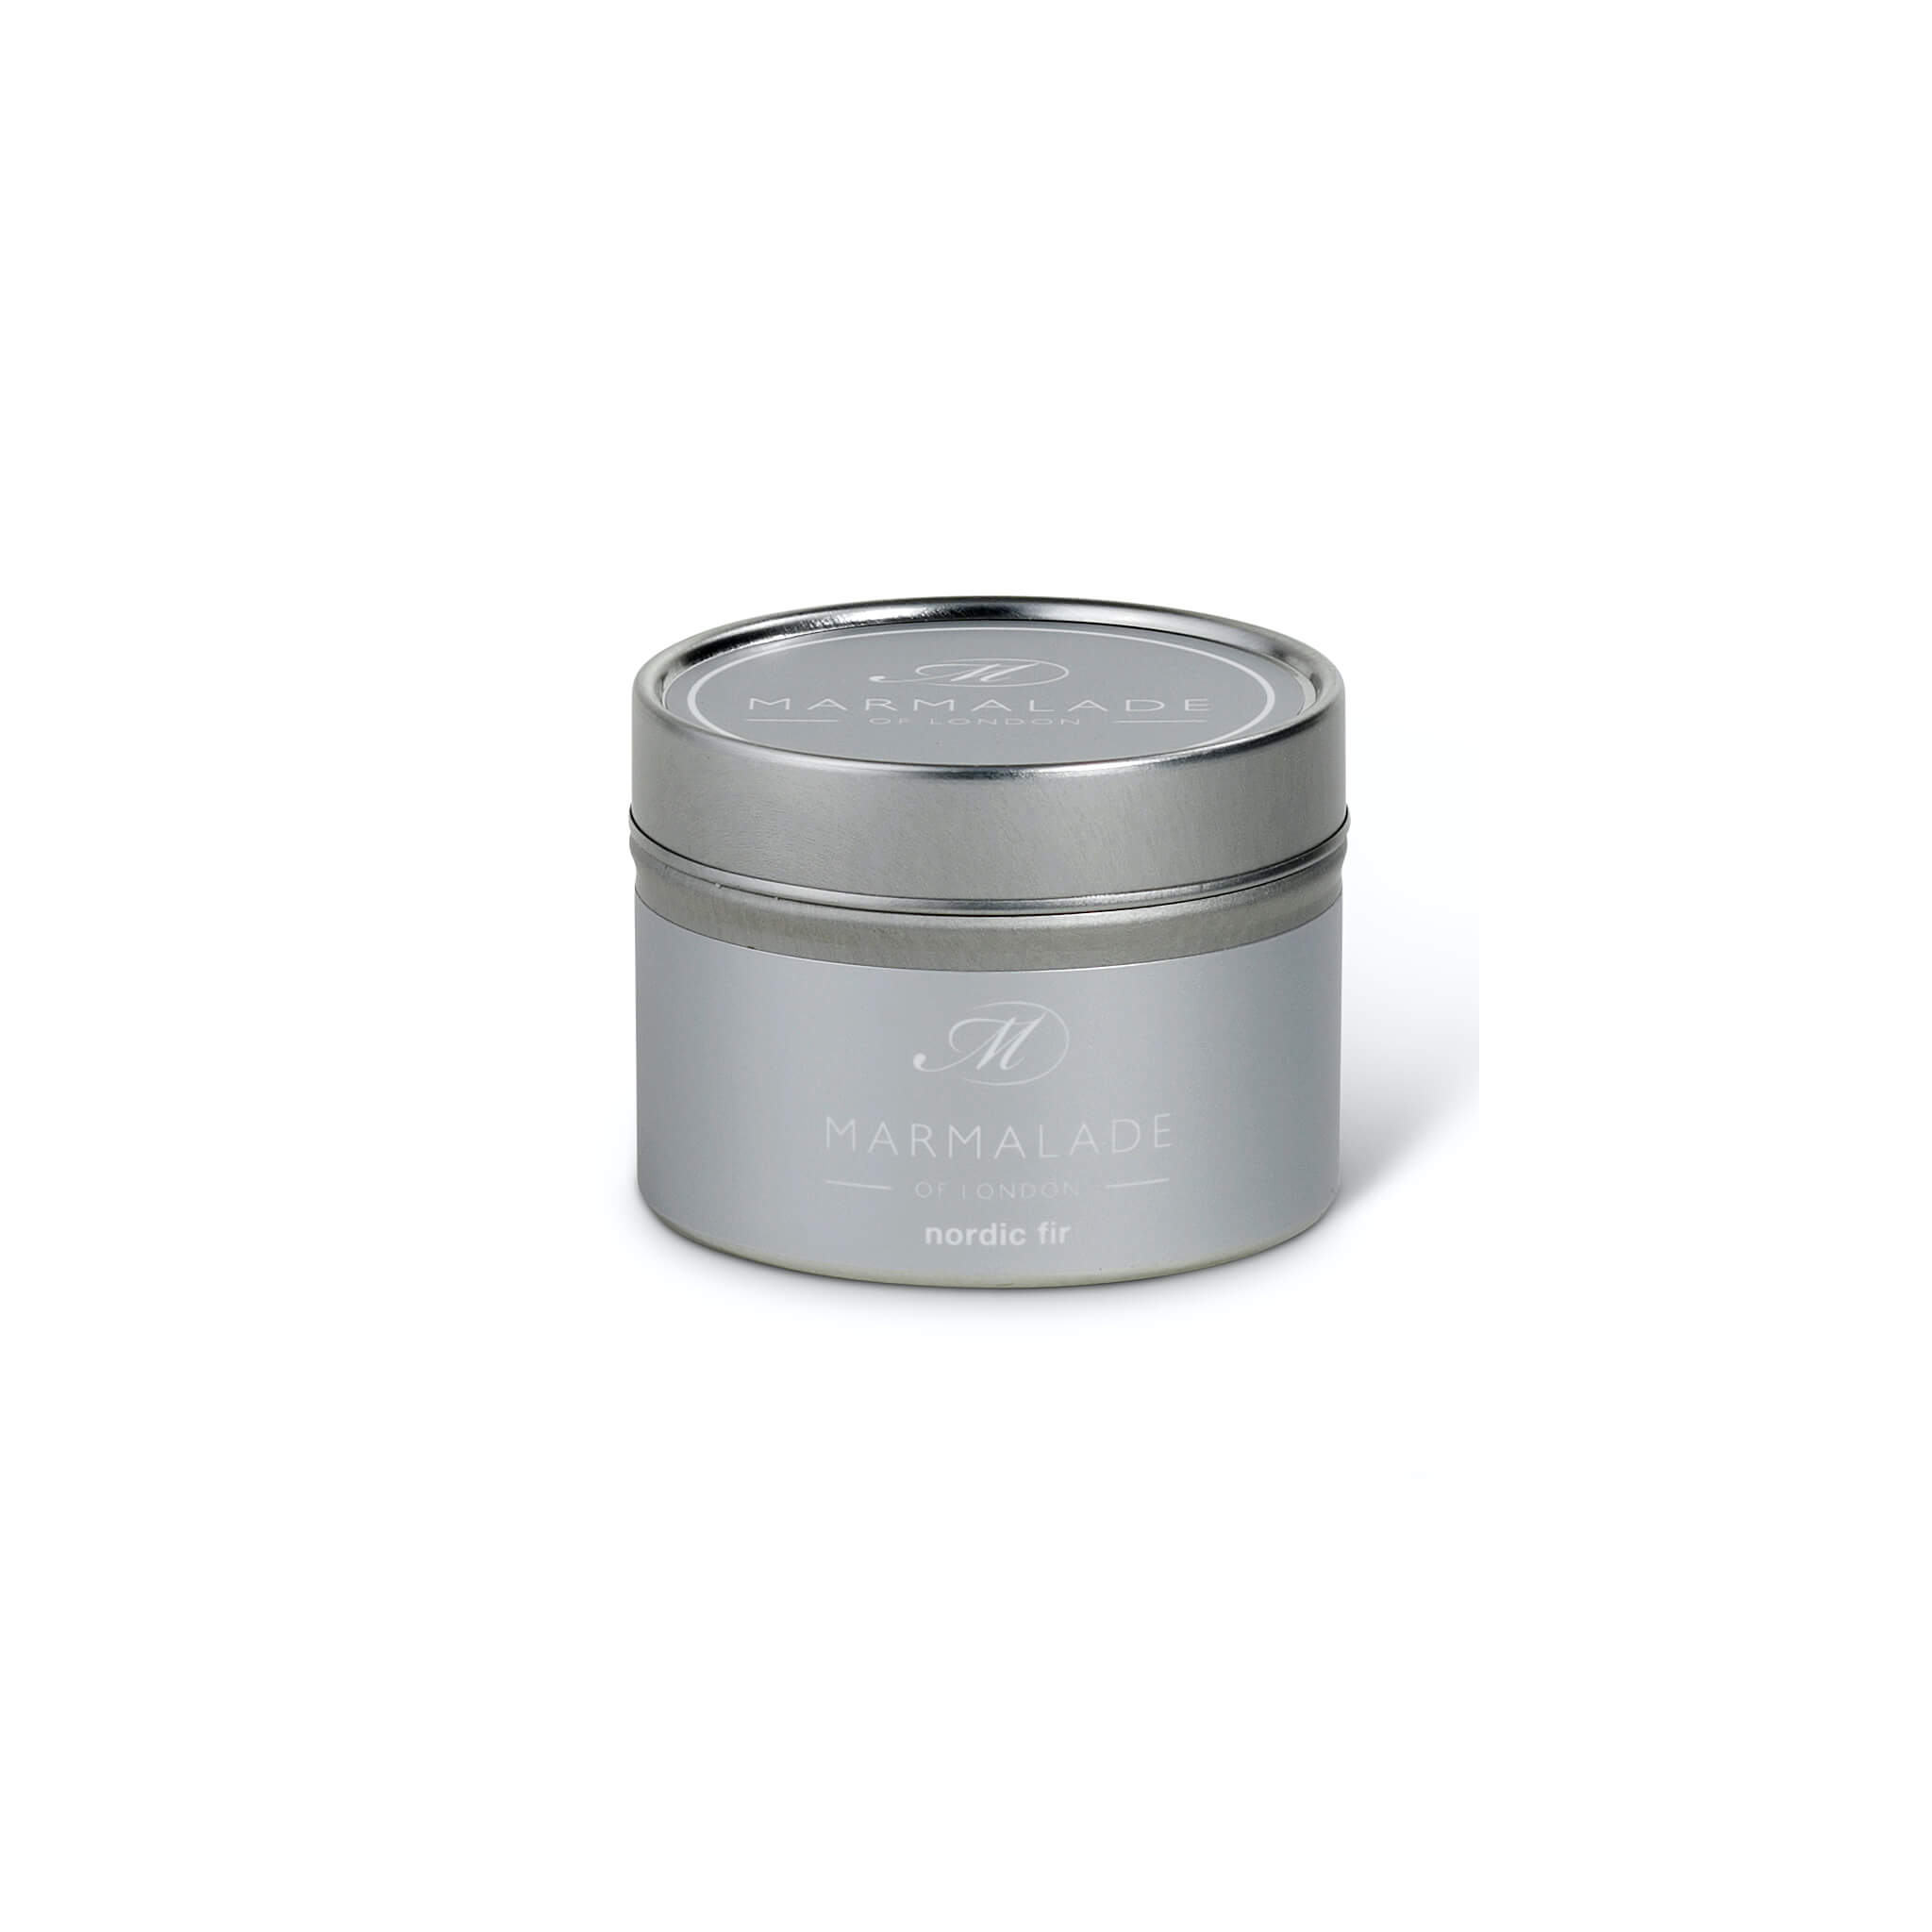 Small Tin Candle - Nordic Fir